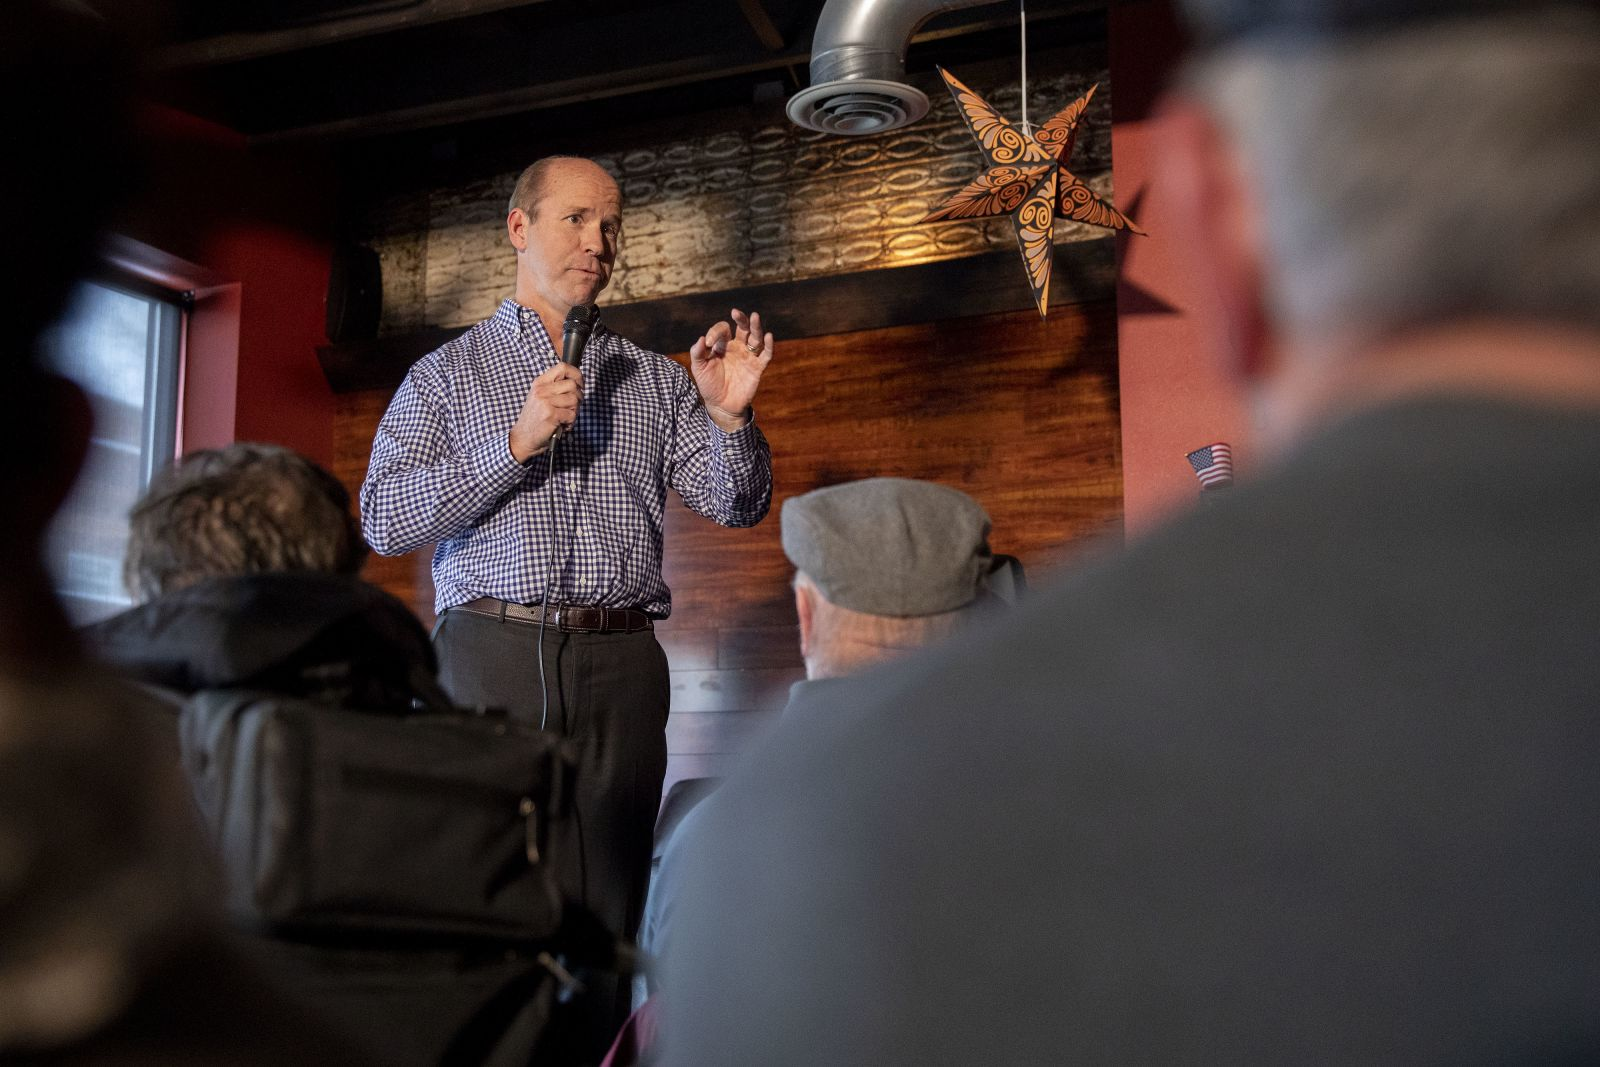 In photos: Presidential candidate John Delaney